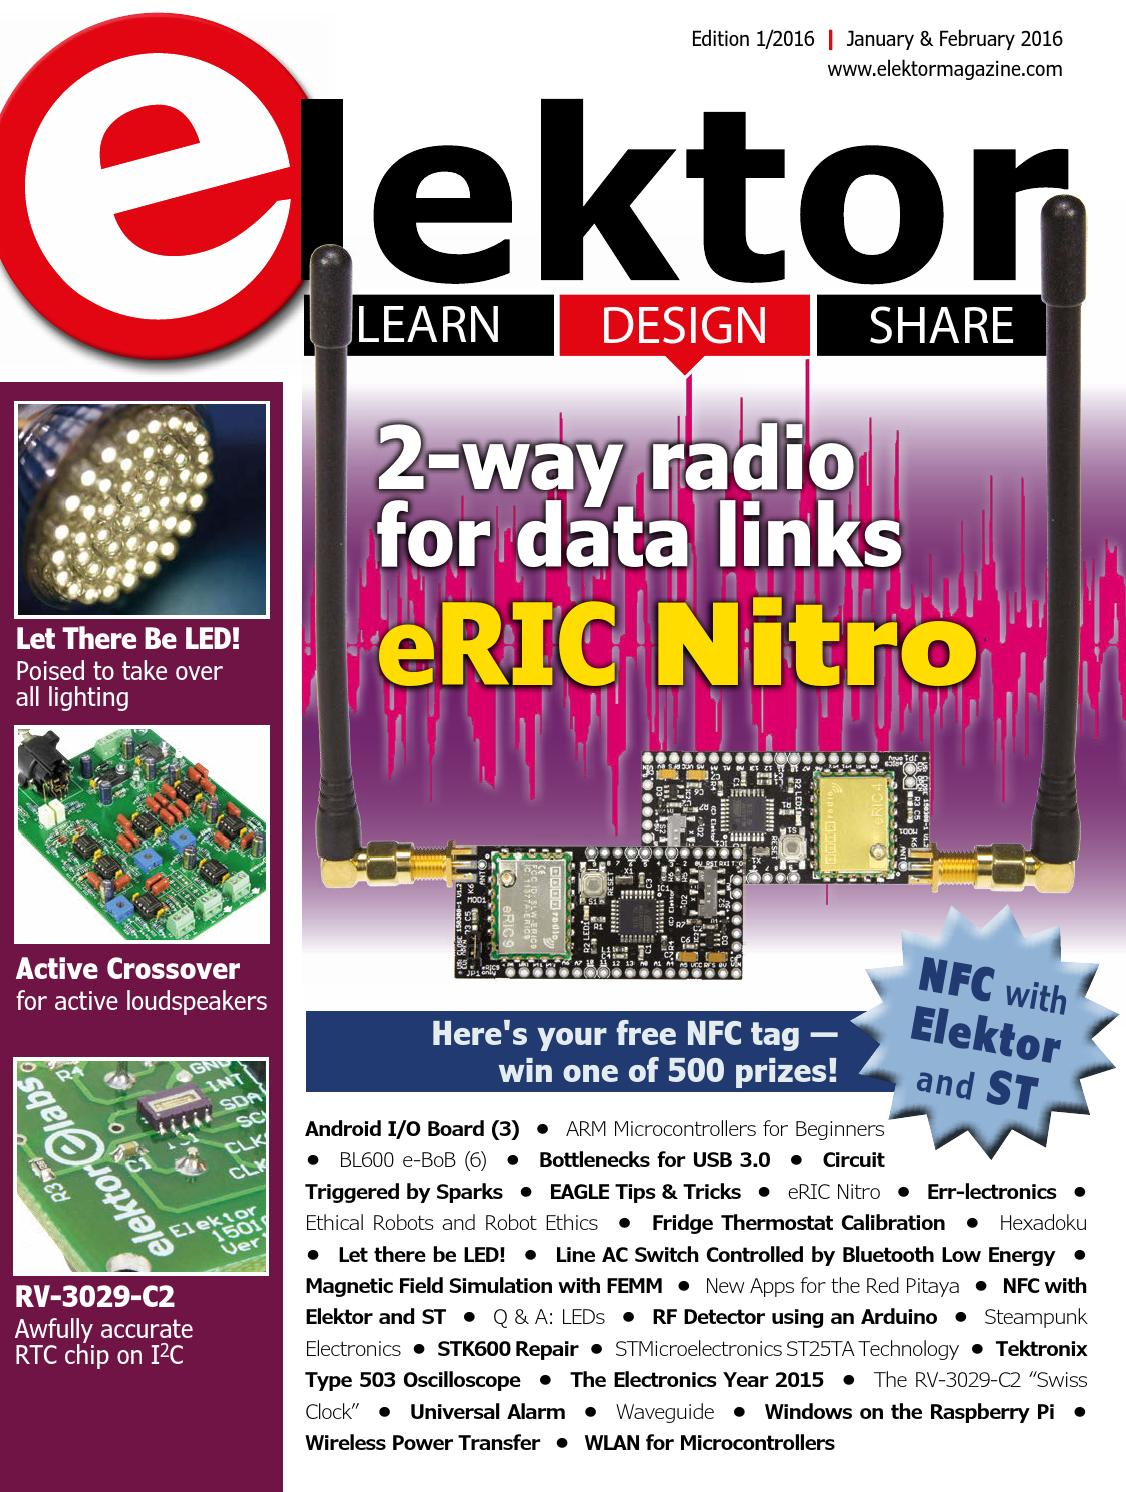 Elektor Edition 1 2016 By Issuu Circuit Was Designed For The Purpose Of Creating An Active Crossover